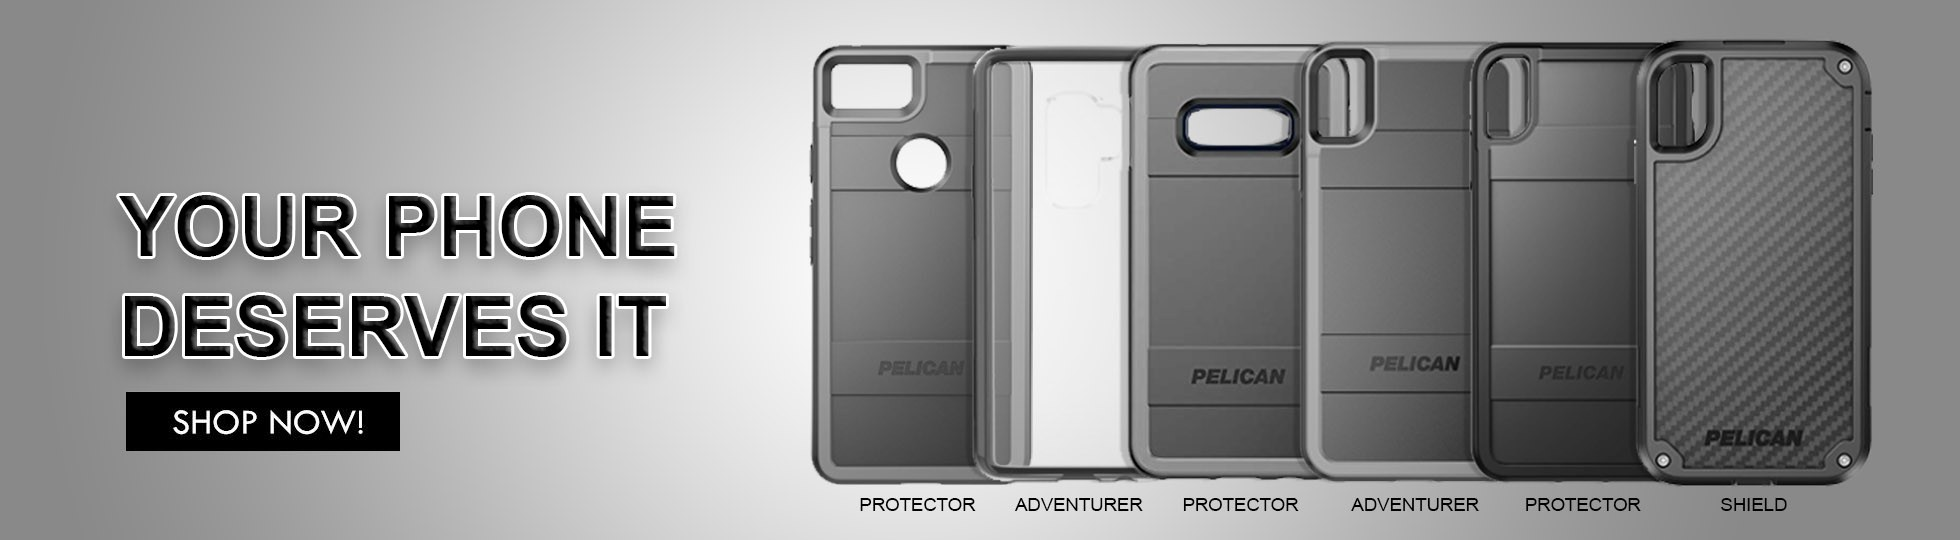 Refurbished iPhones, Samsung, Oppo | Hassle Free Warranty, Repair